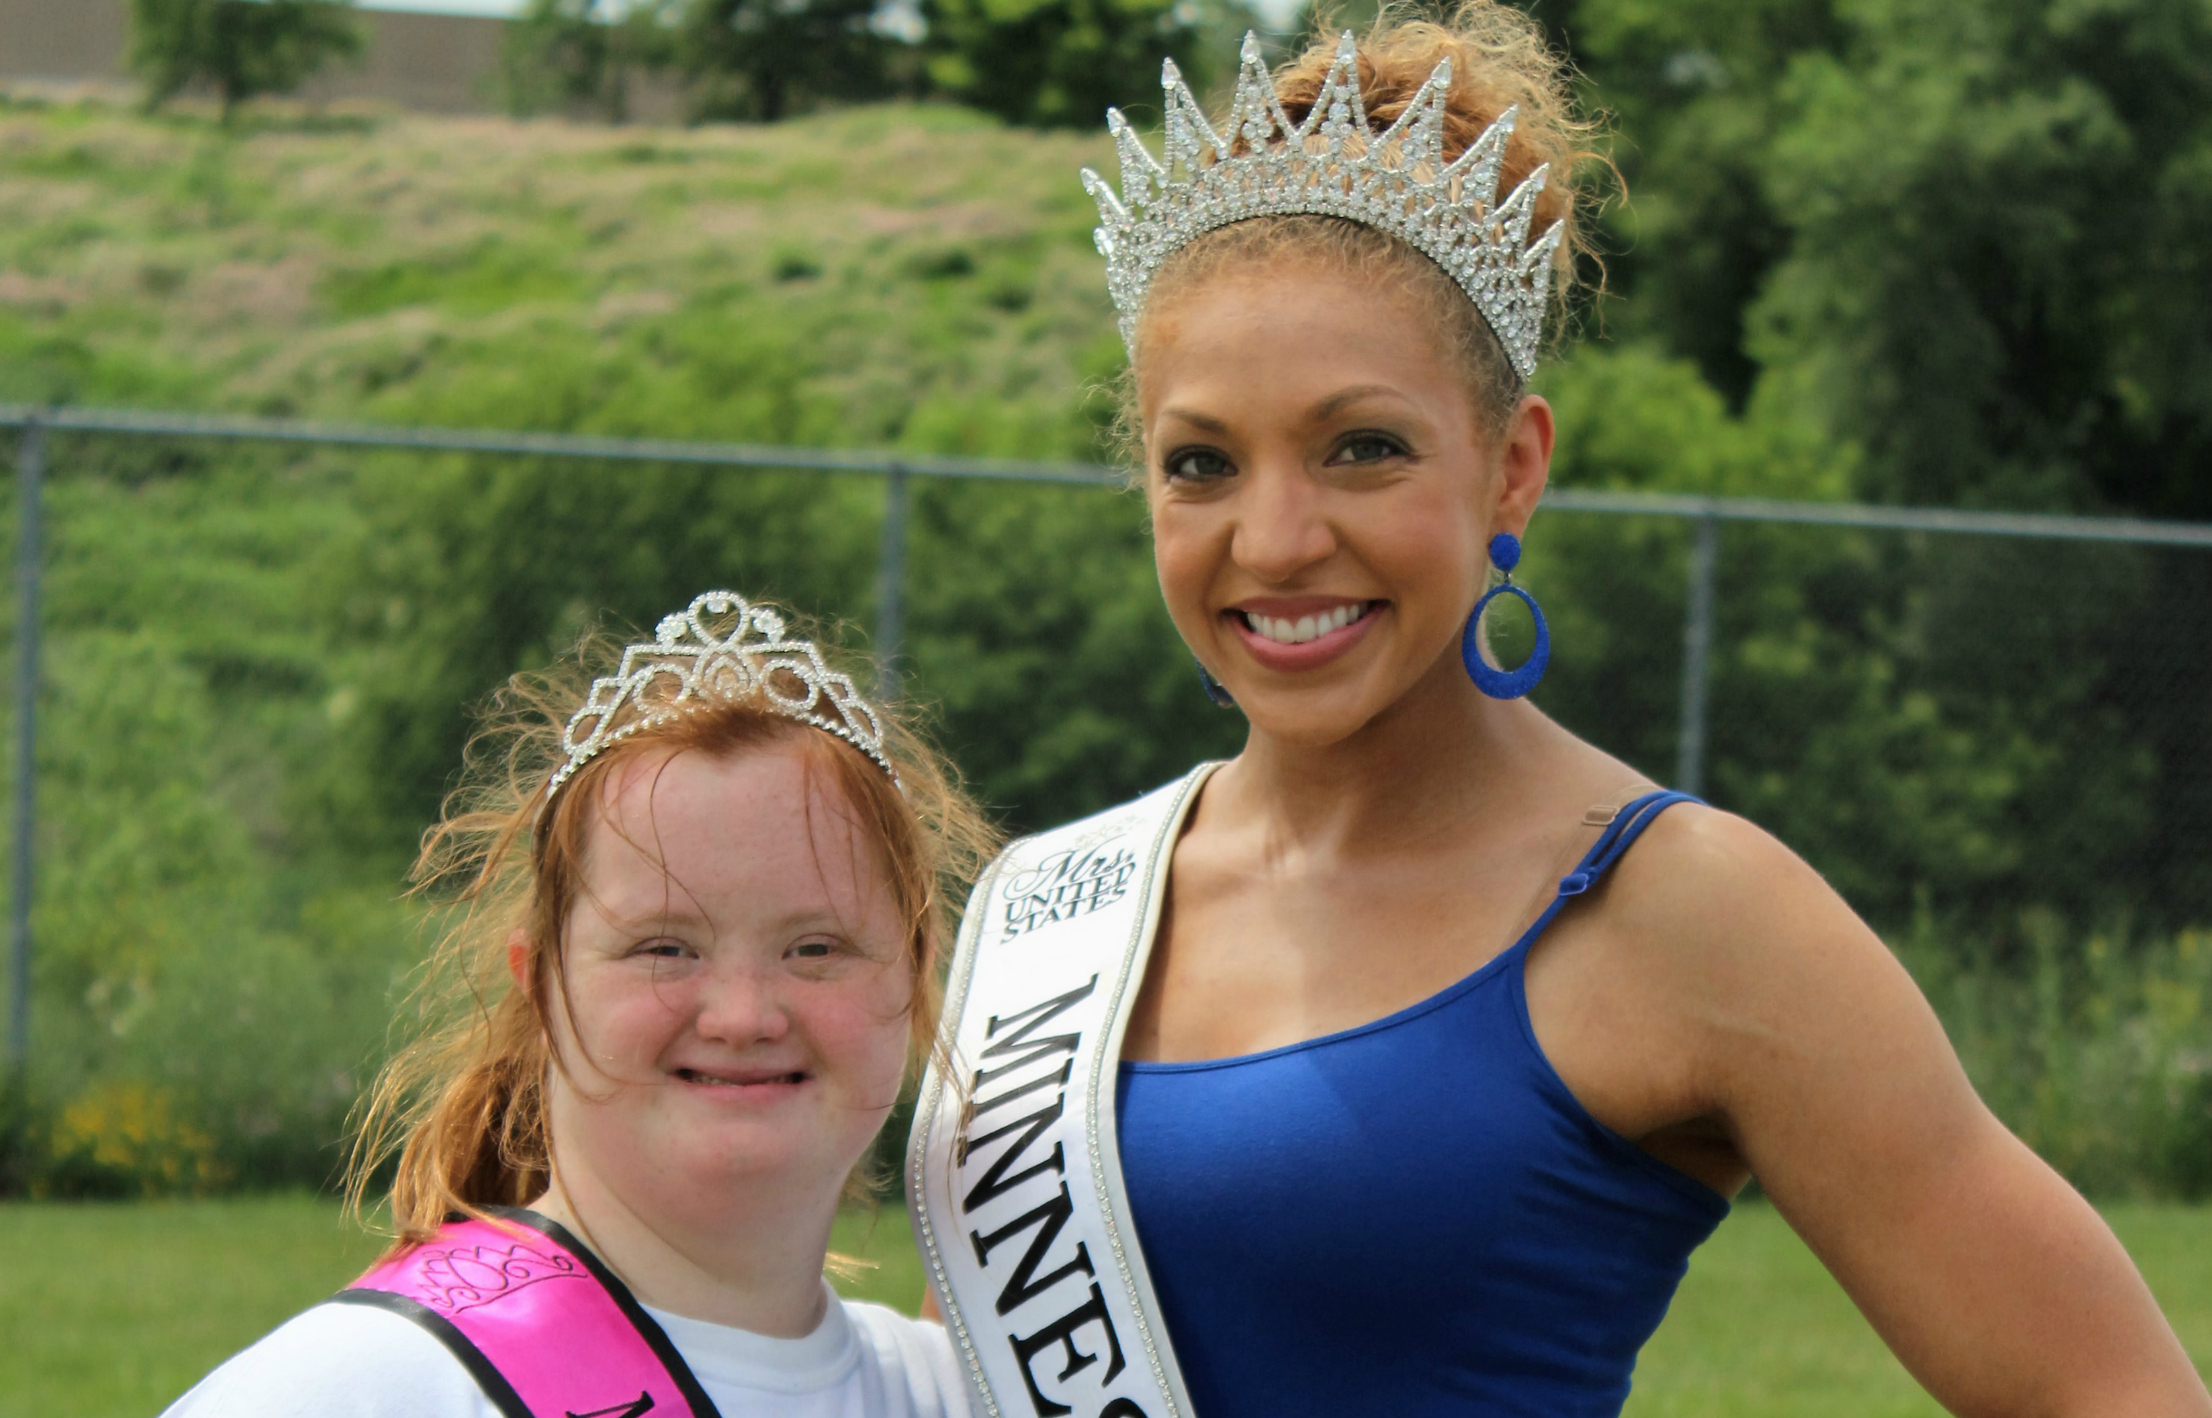 With Mrs. Minnesota